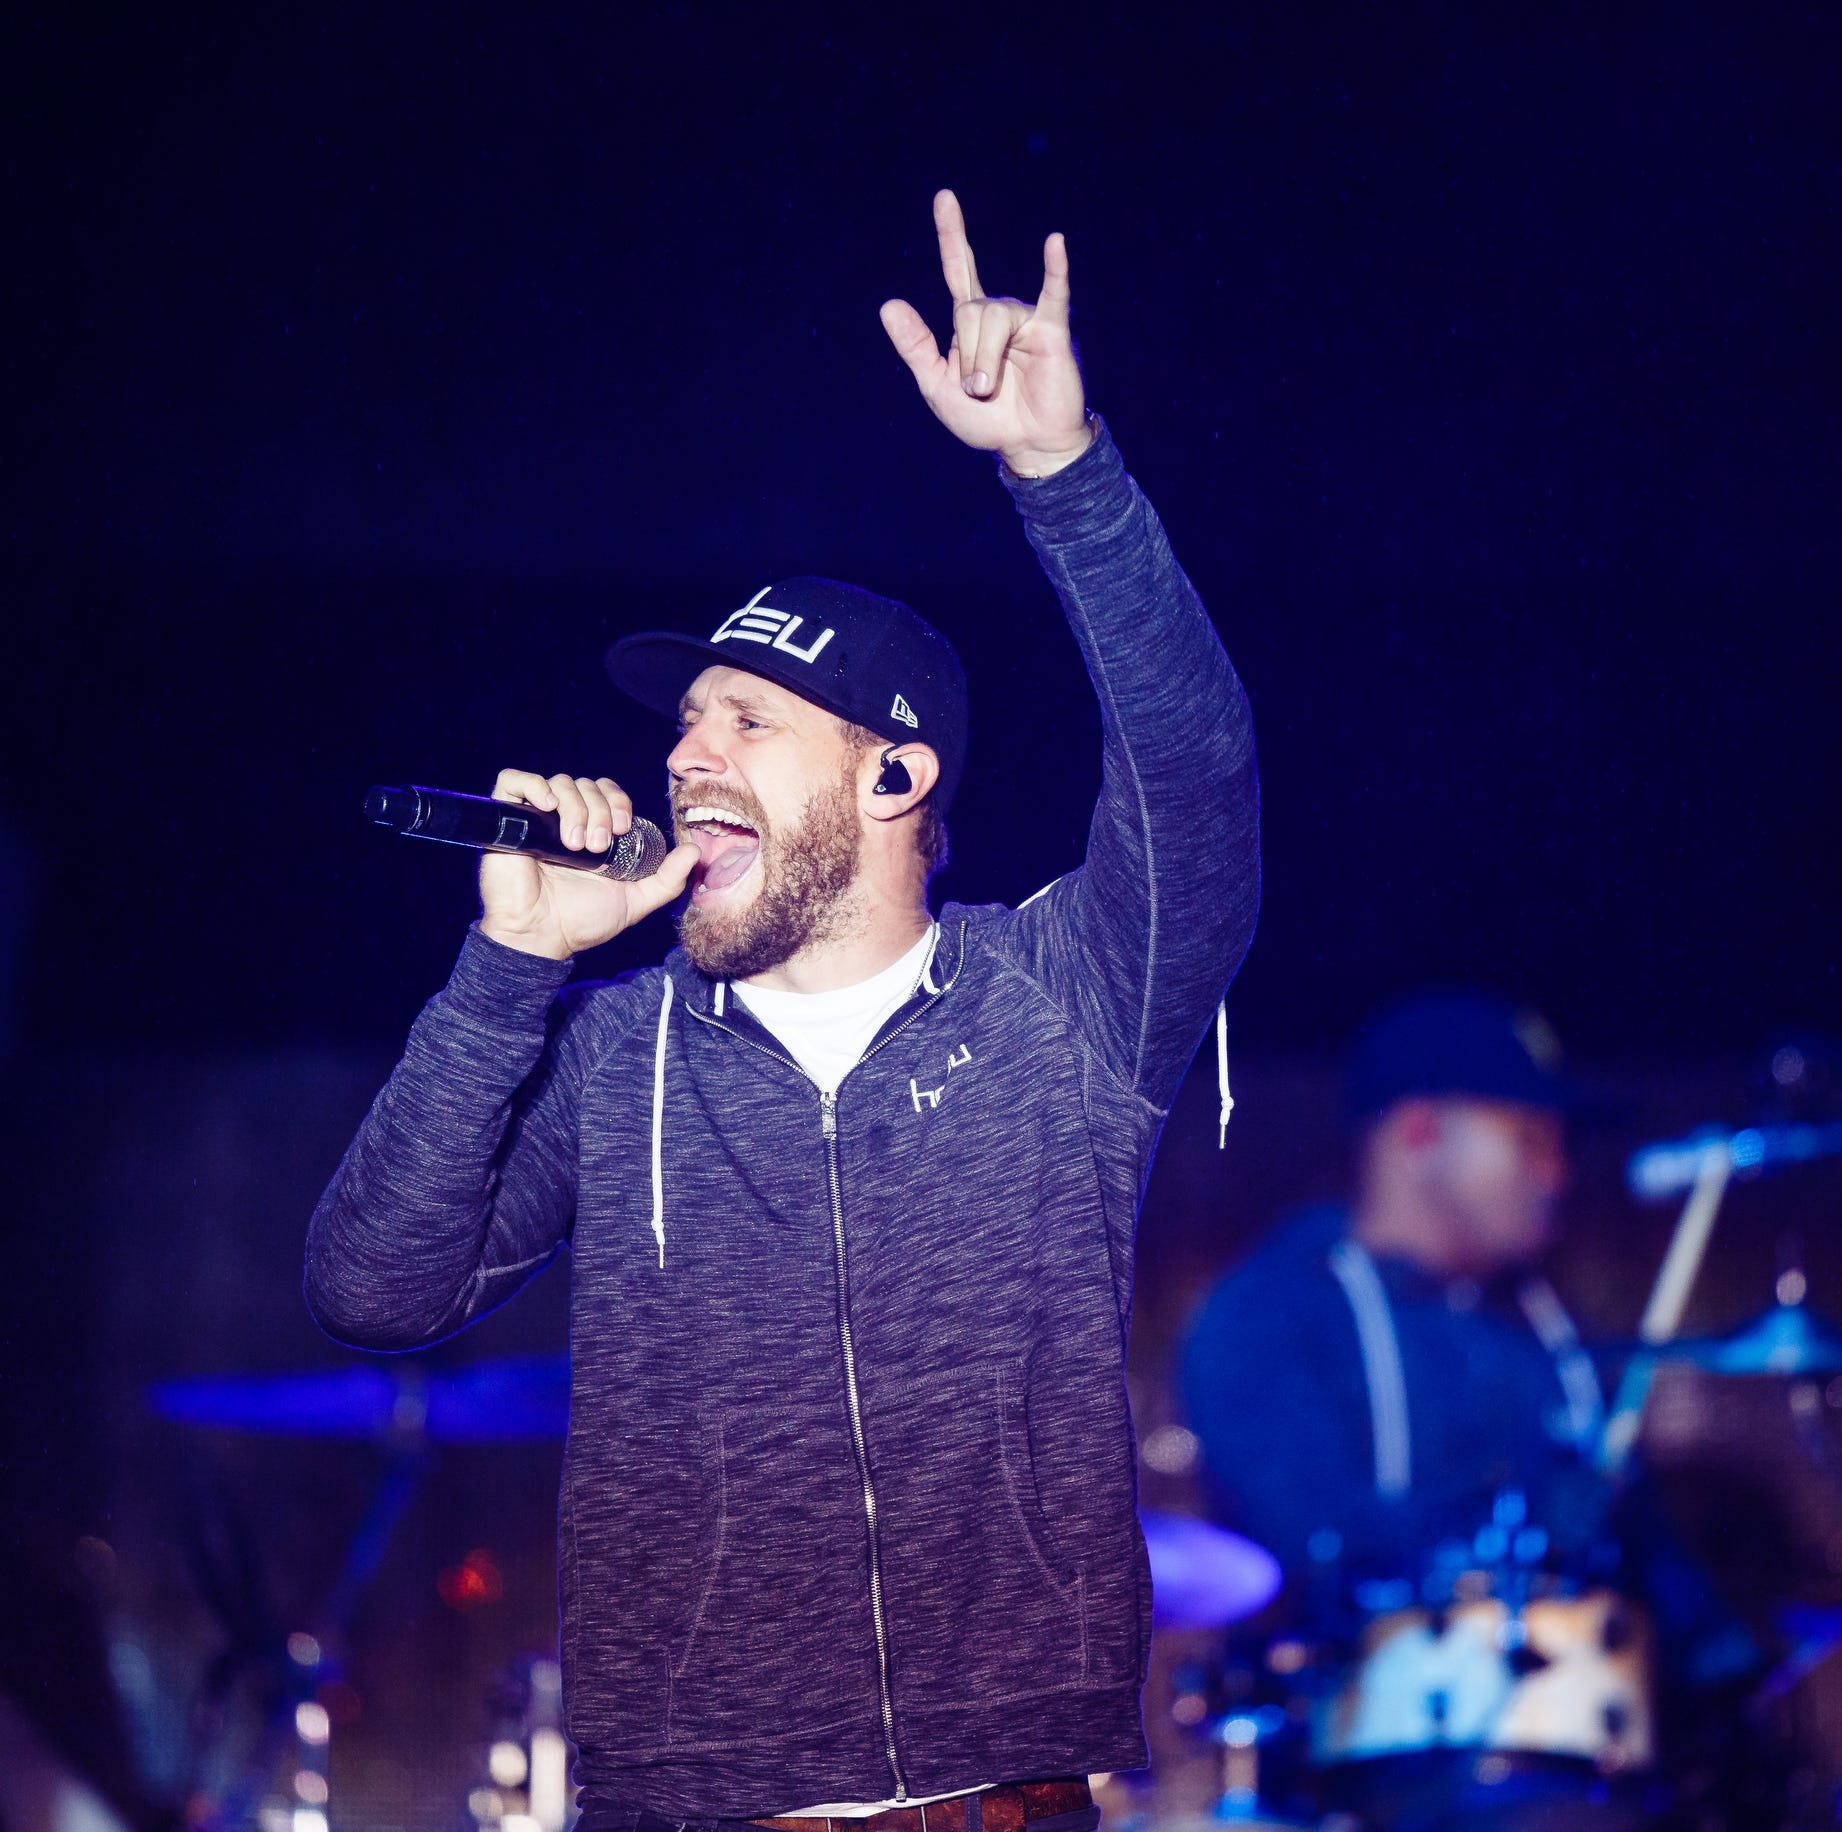 Chase Rice performs during Luke Bryan's Farm Tour on Saturday, Sept. 29, 2018 in Boone.